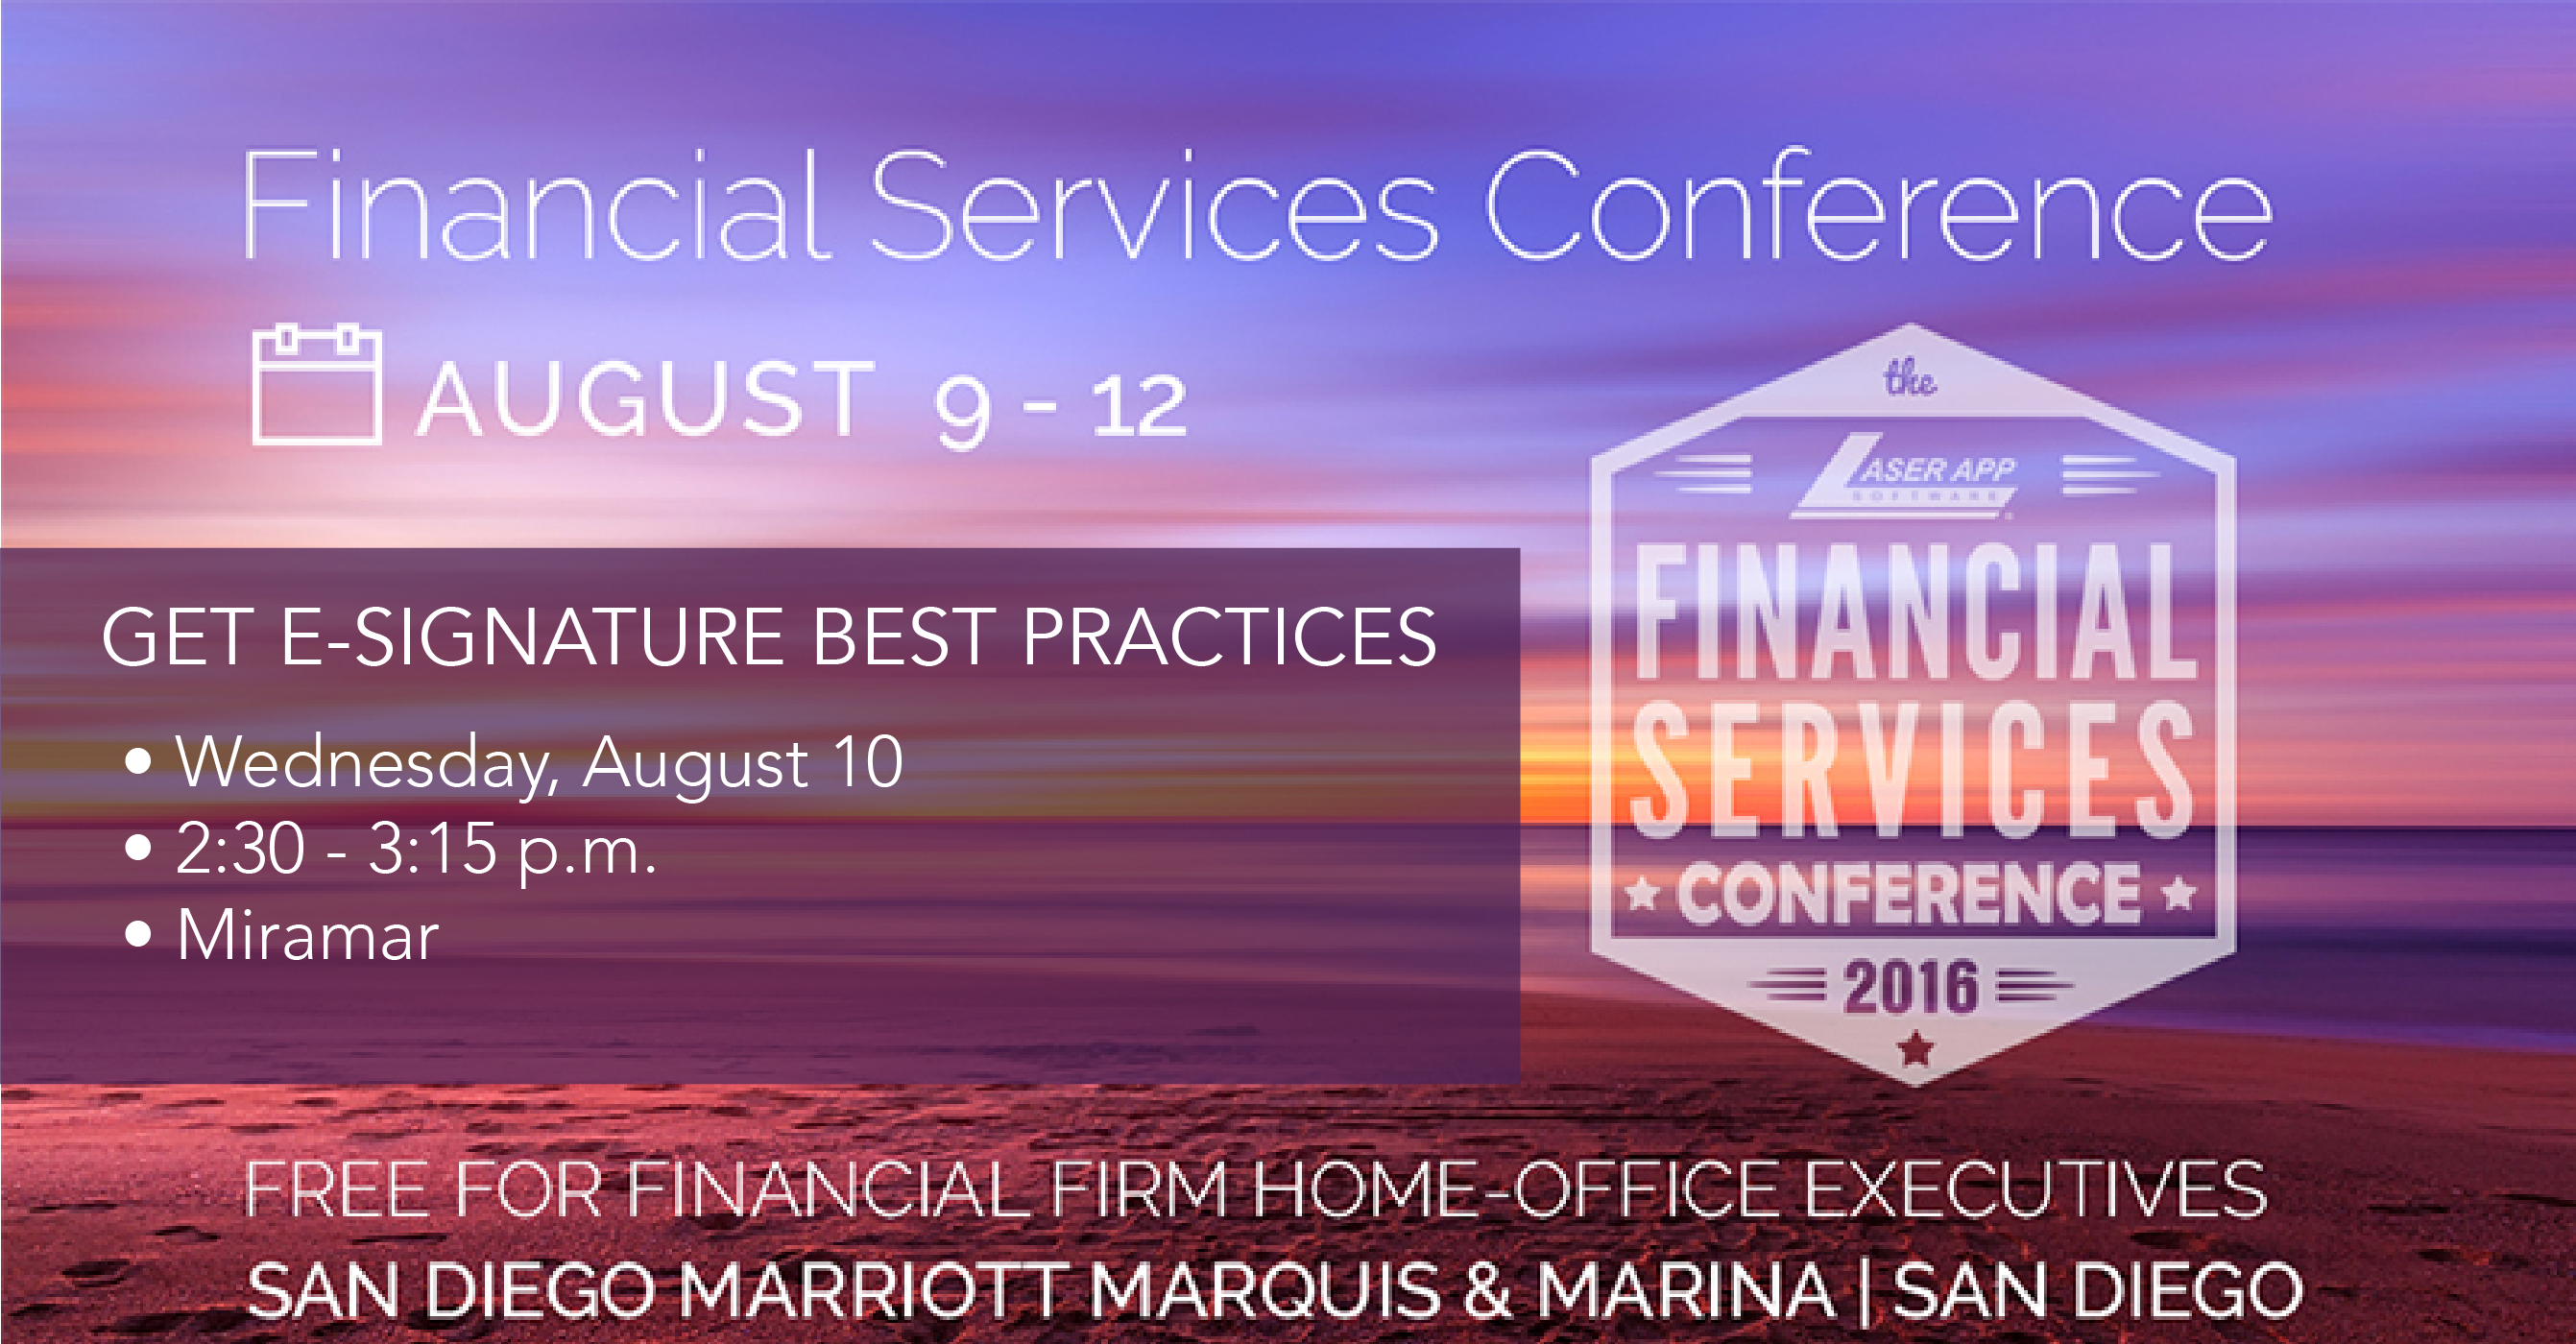 SIGNiX to Speak About E-Signatures During the 2016 Laser App Financial Services Conference